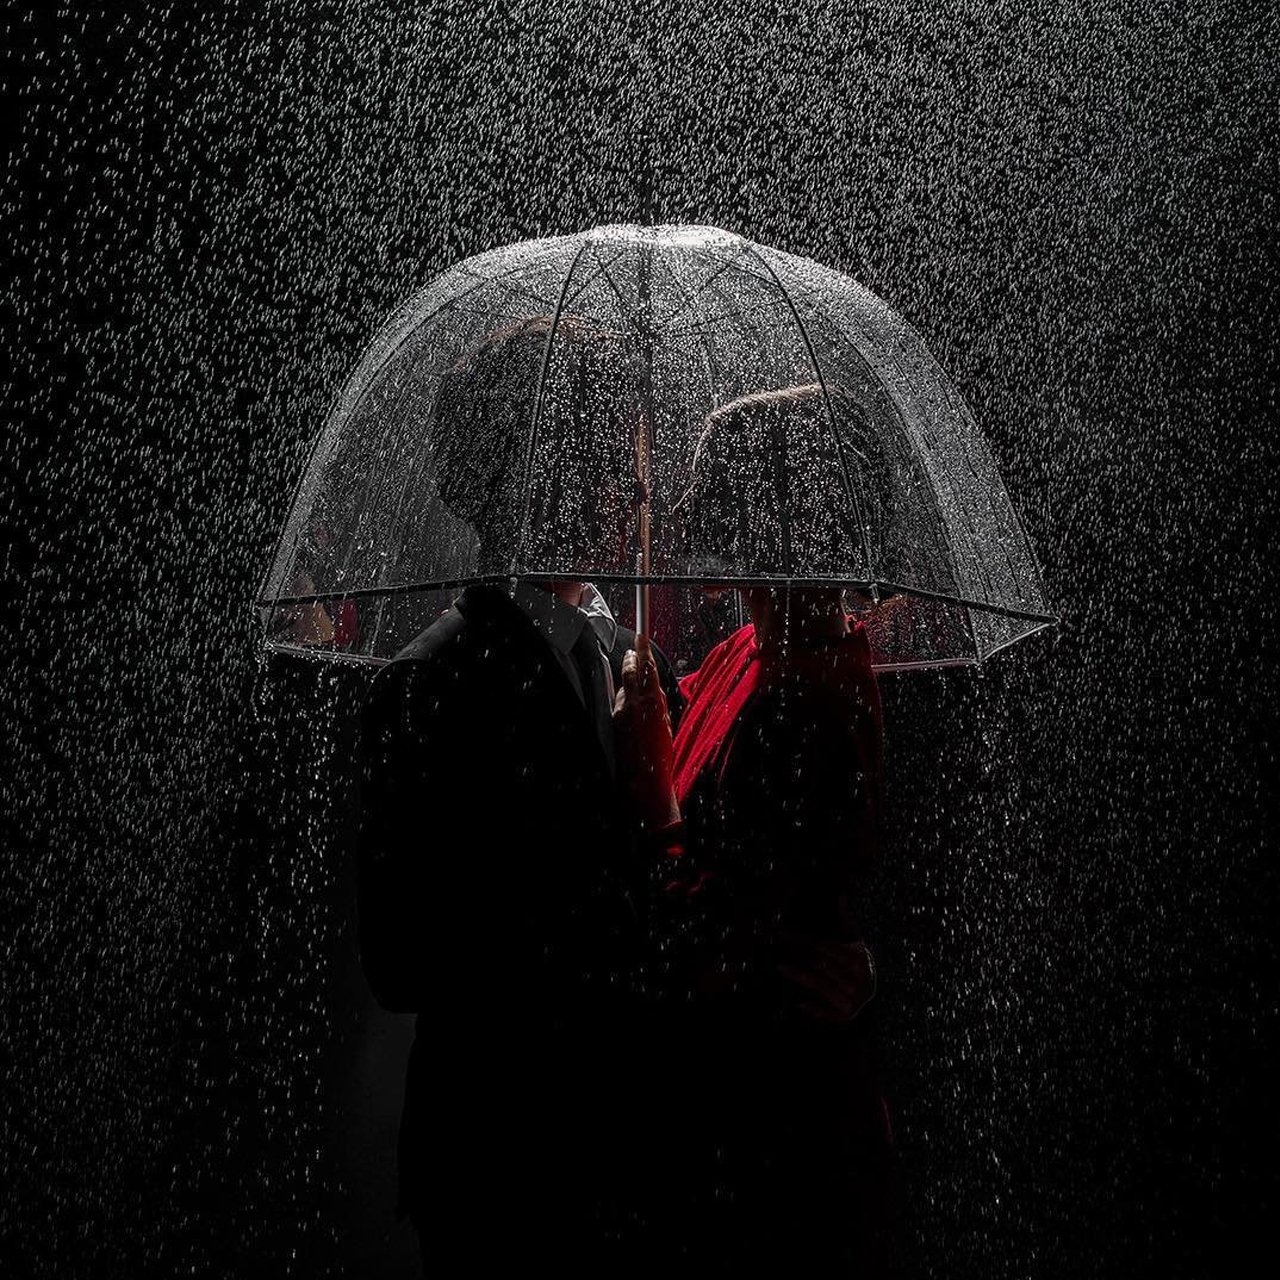 artistic image of couple under an umbrella in the rain at night